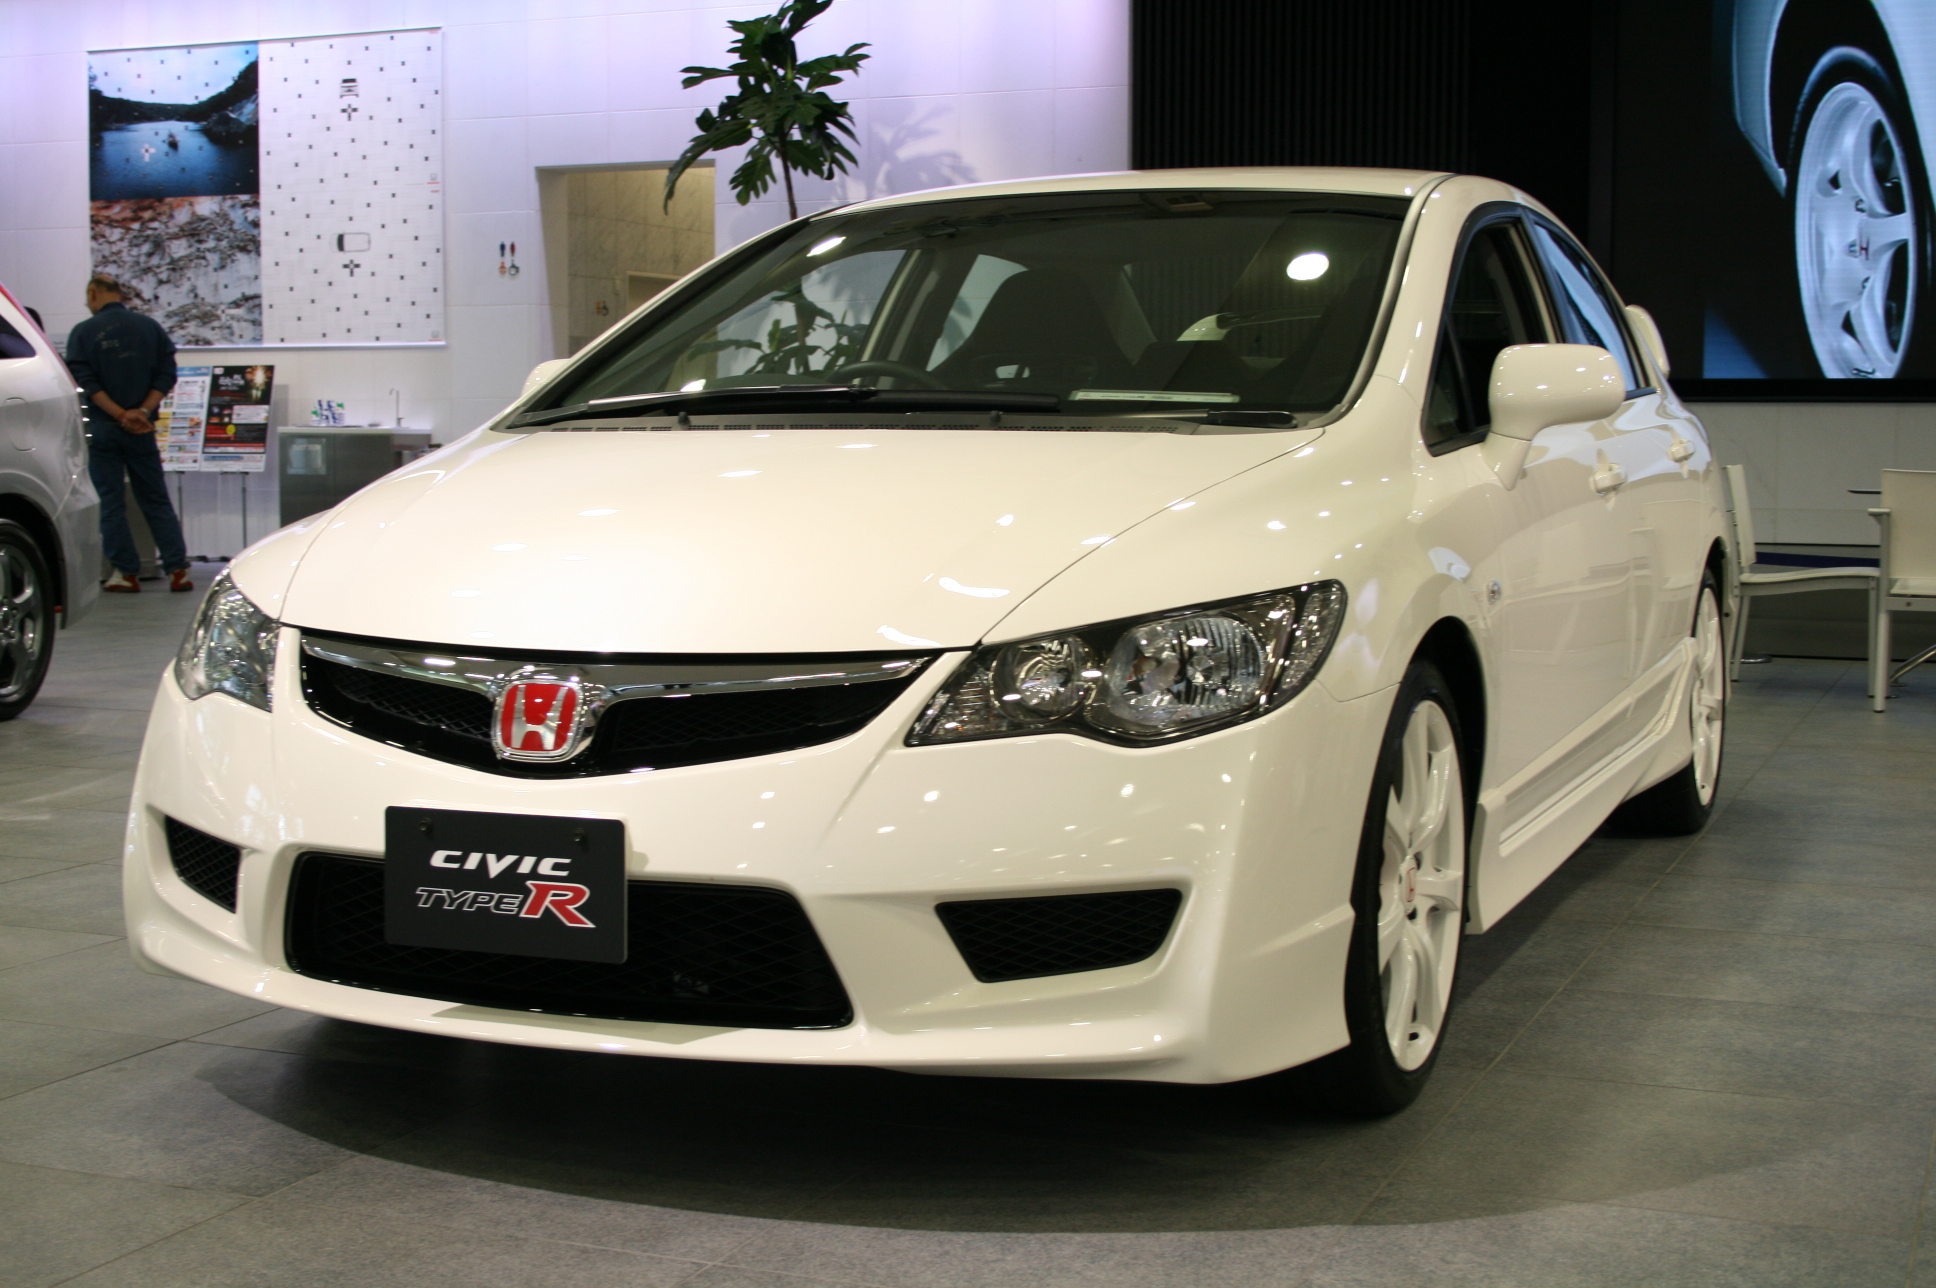 Honda Civic photo 04